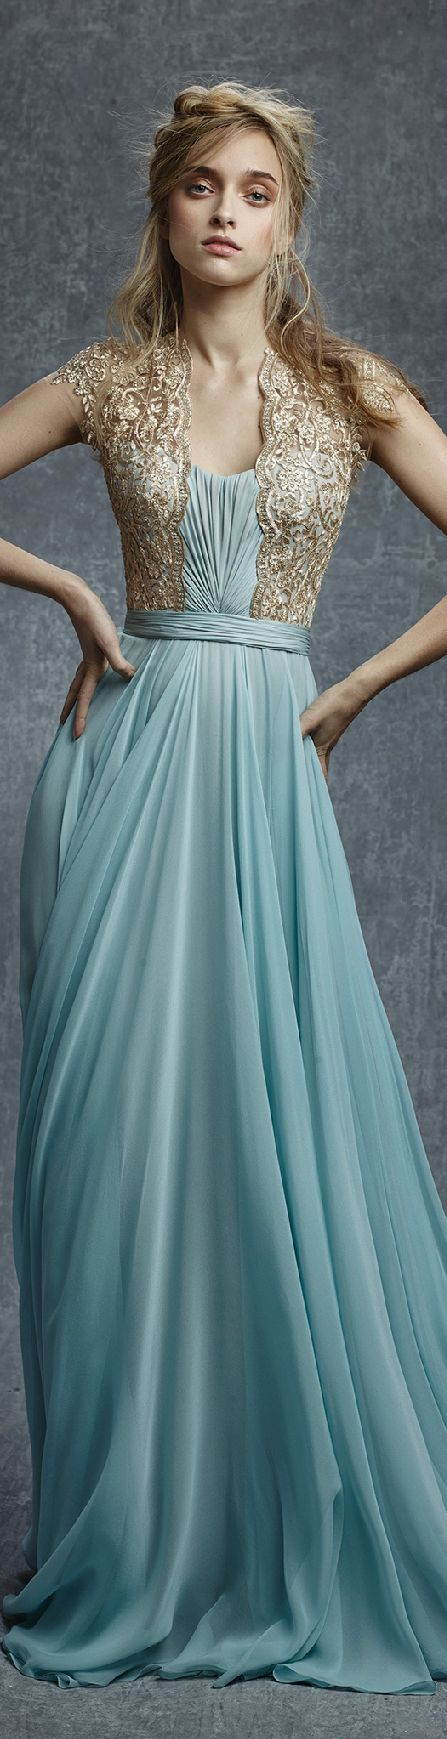 love the gold embroidery and the shaping. if the blue parts were ivory, would make a serious dress contender!